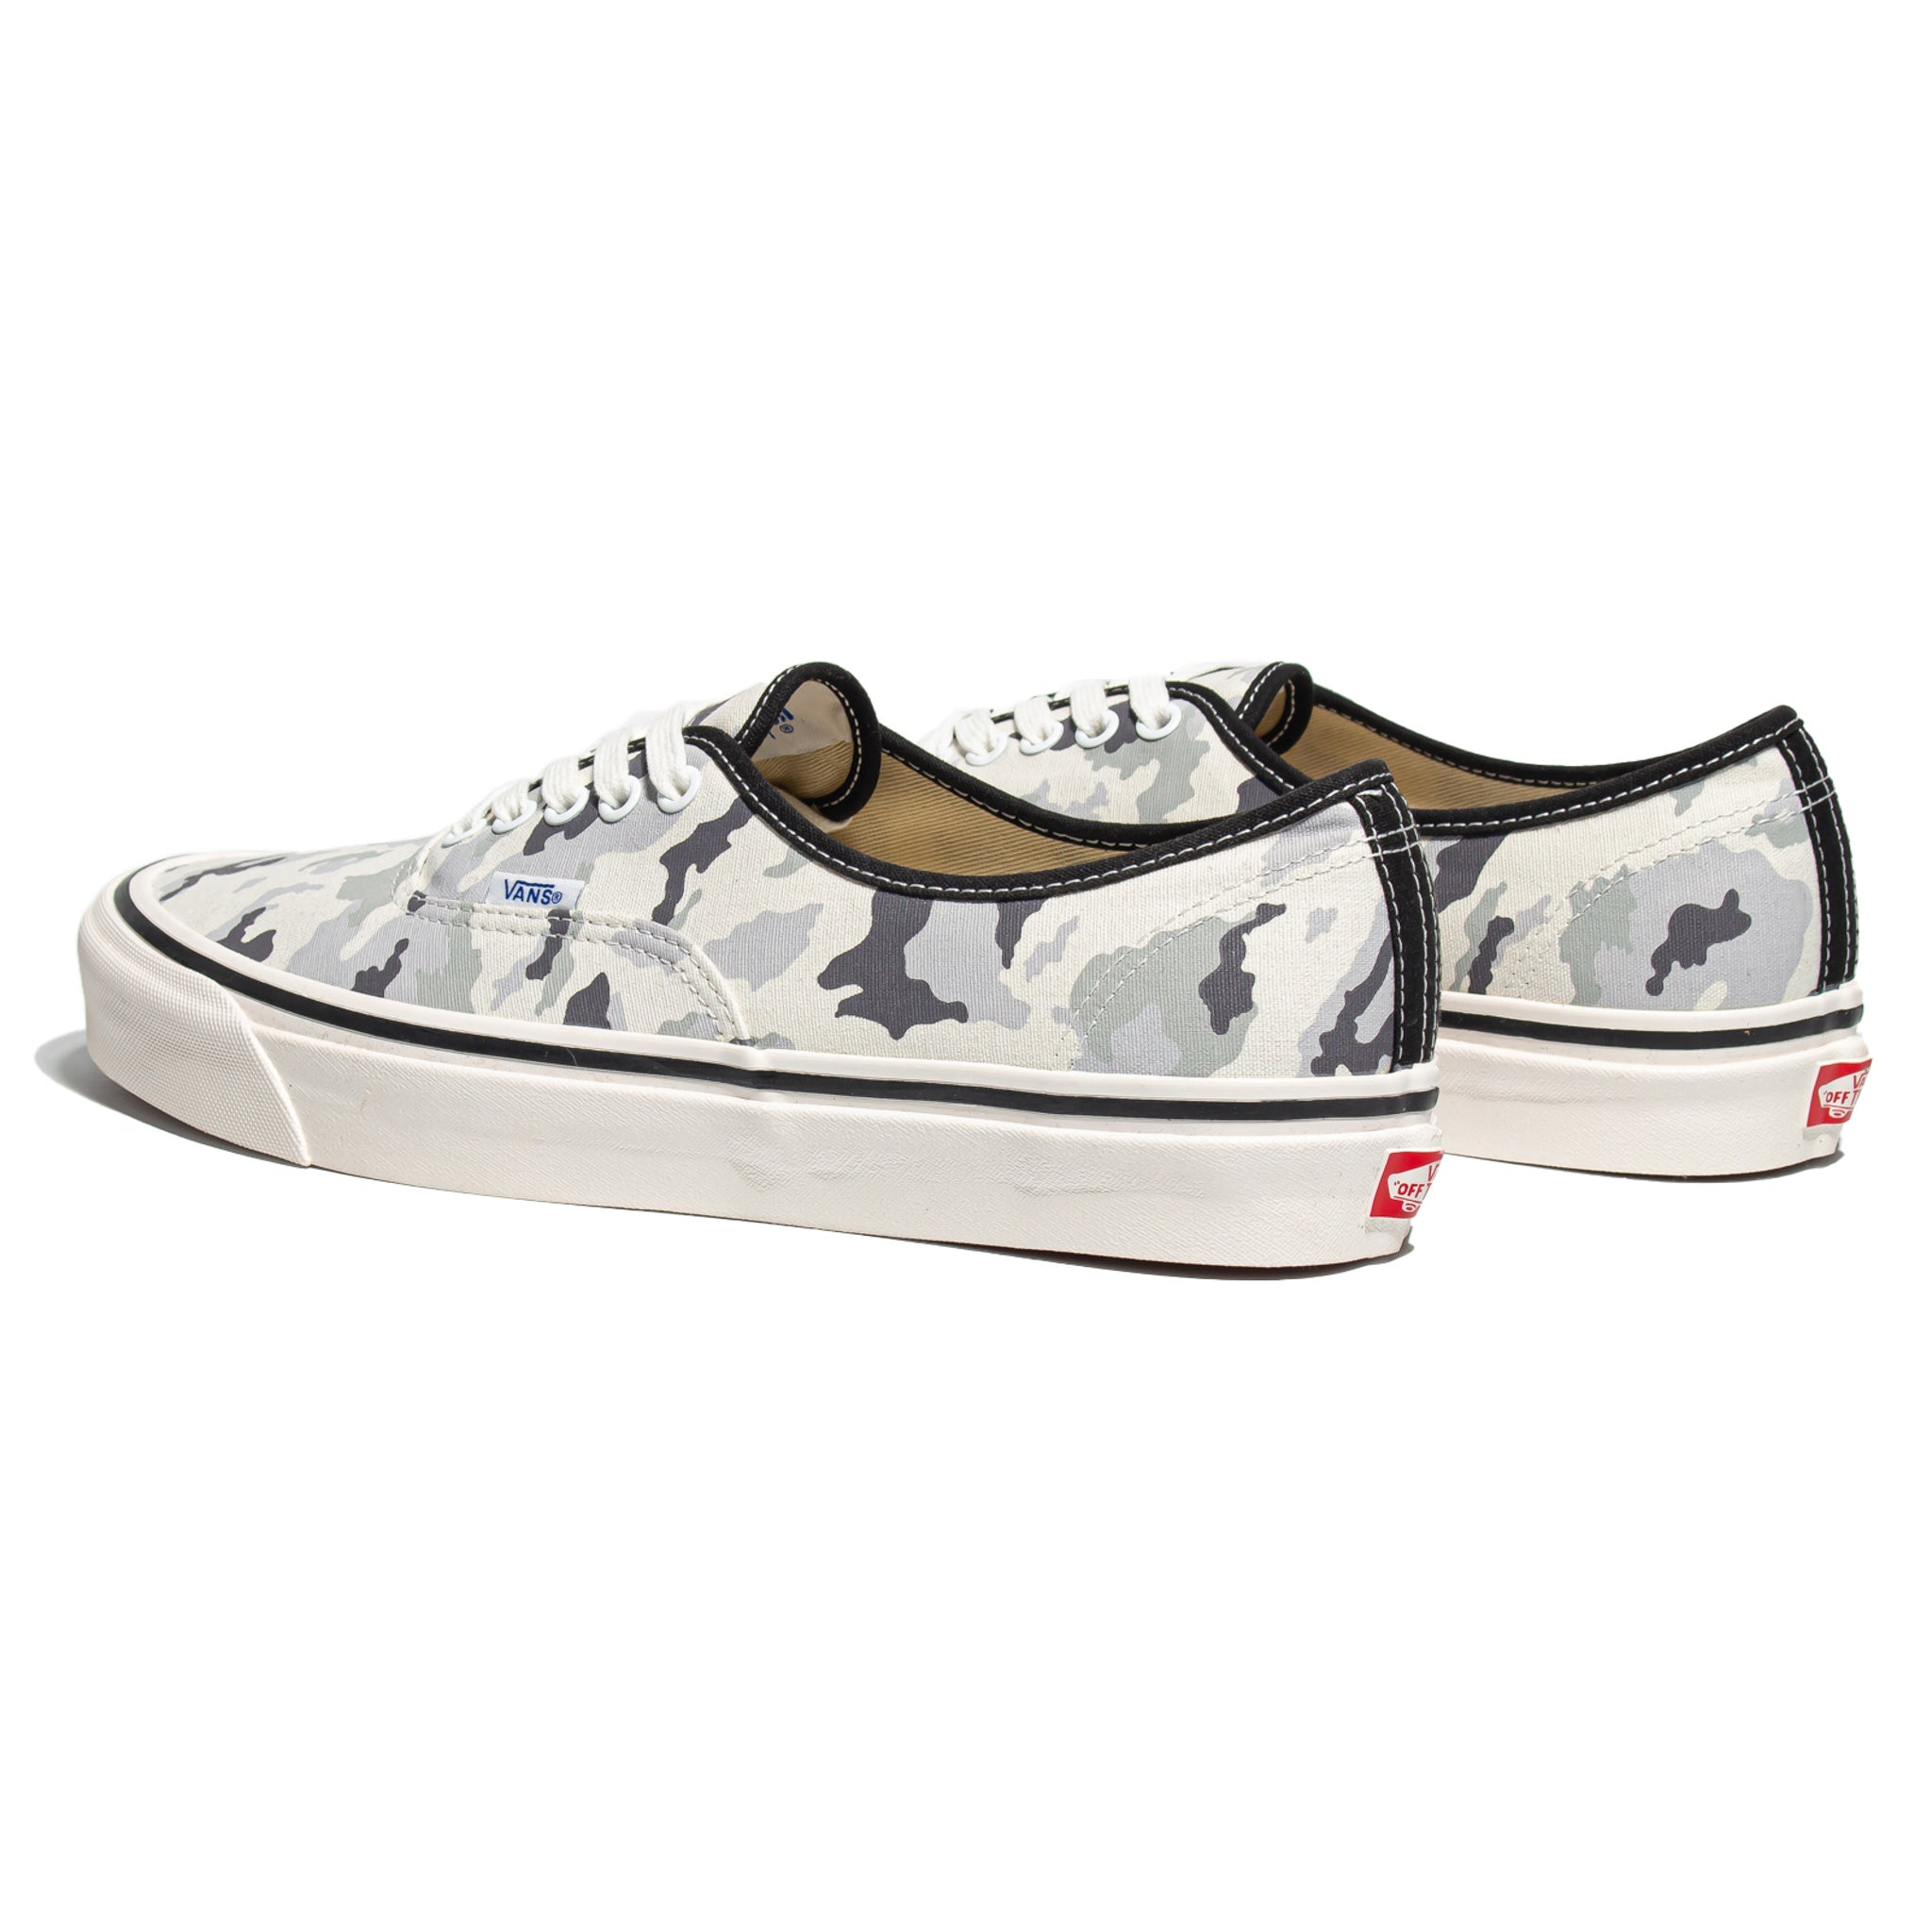 Vans Authentic 44 DX Grey Camo